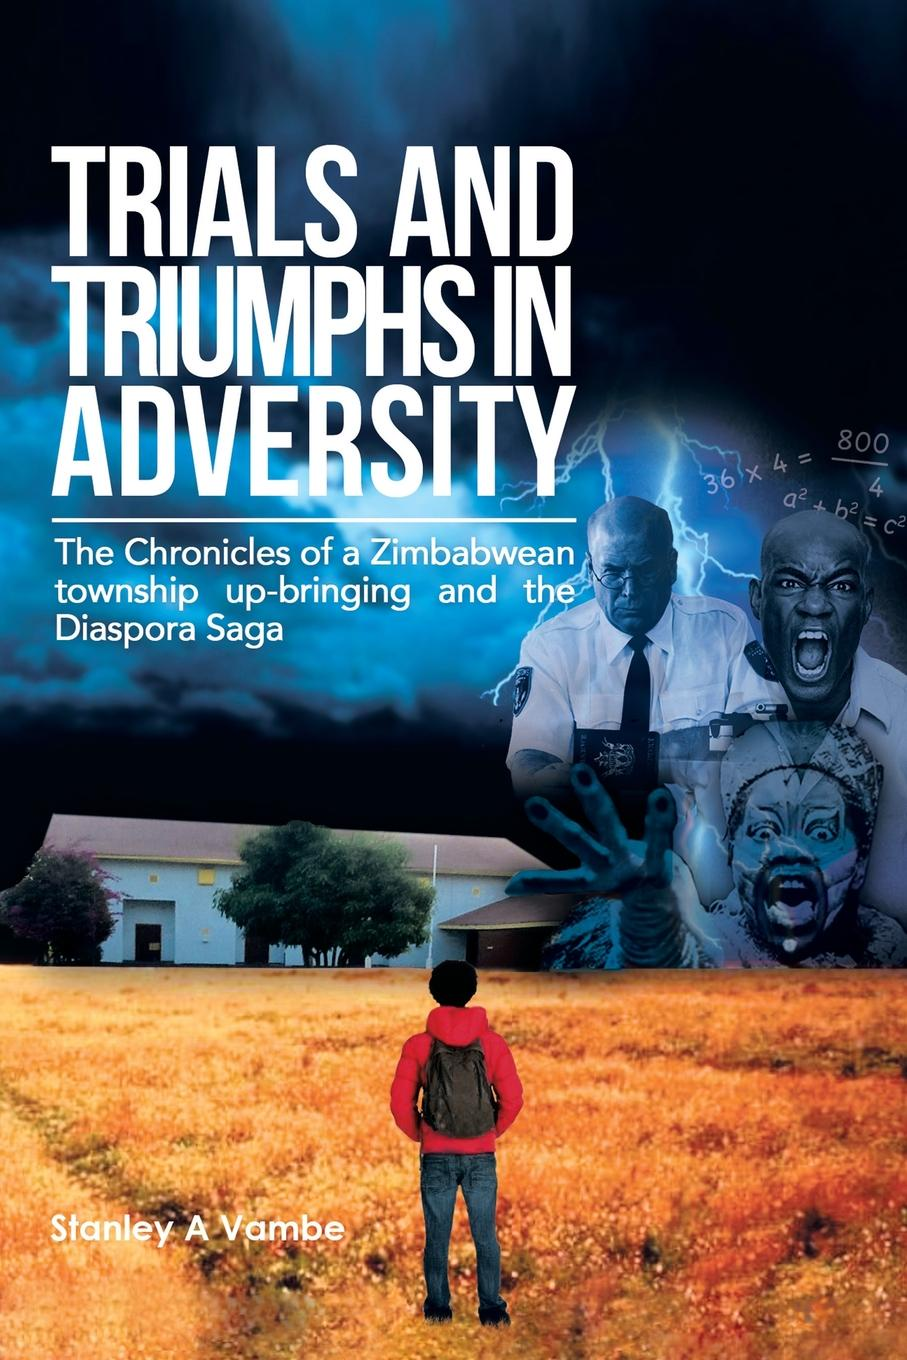 цены Stanley a. Vambe Trials and Triumphs in Adversity. The Chronicles of a Zimbabwean Township Up-Bringing and the Diaspora Saga